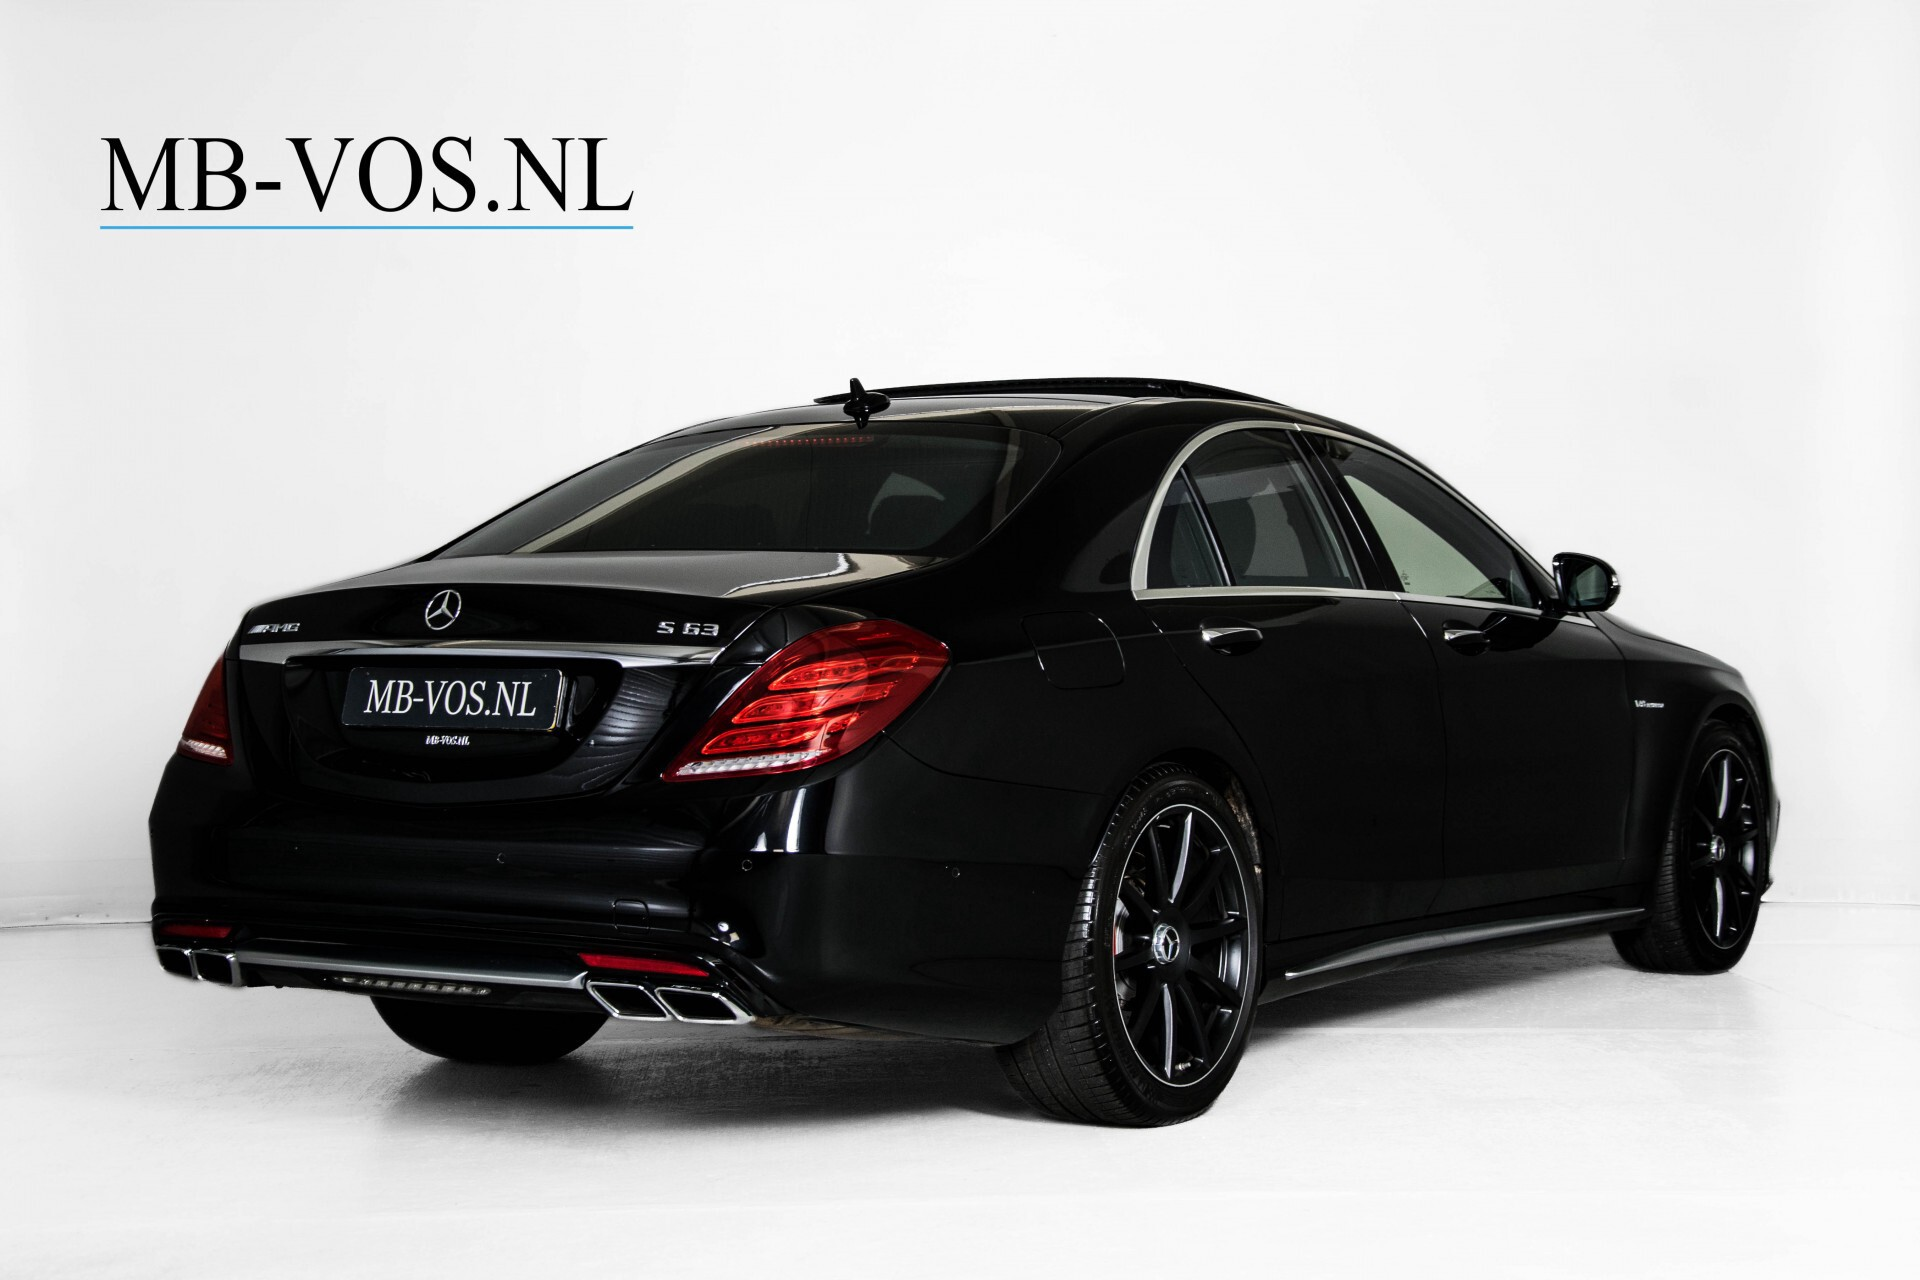 Mercedes-Benz S-Klasse 63 AMG Exclusive/Burmester High-End/Driverspack Aut7 Foto 2